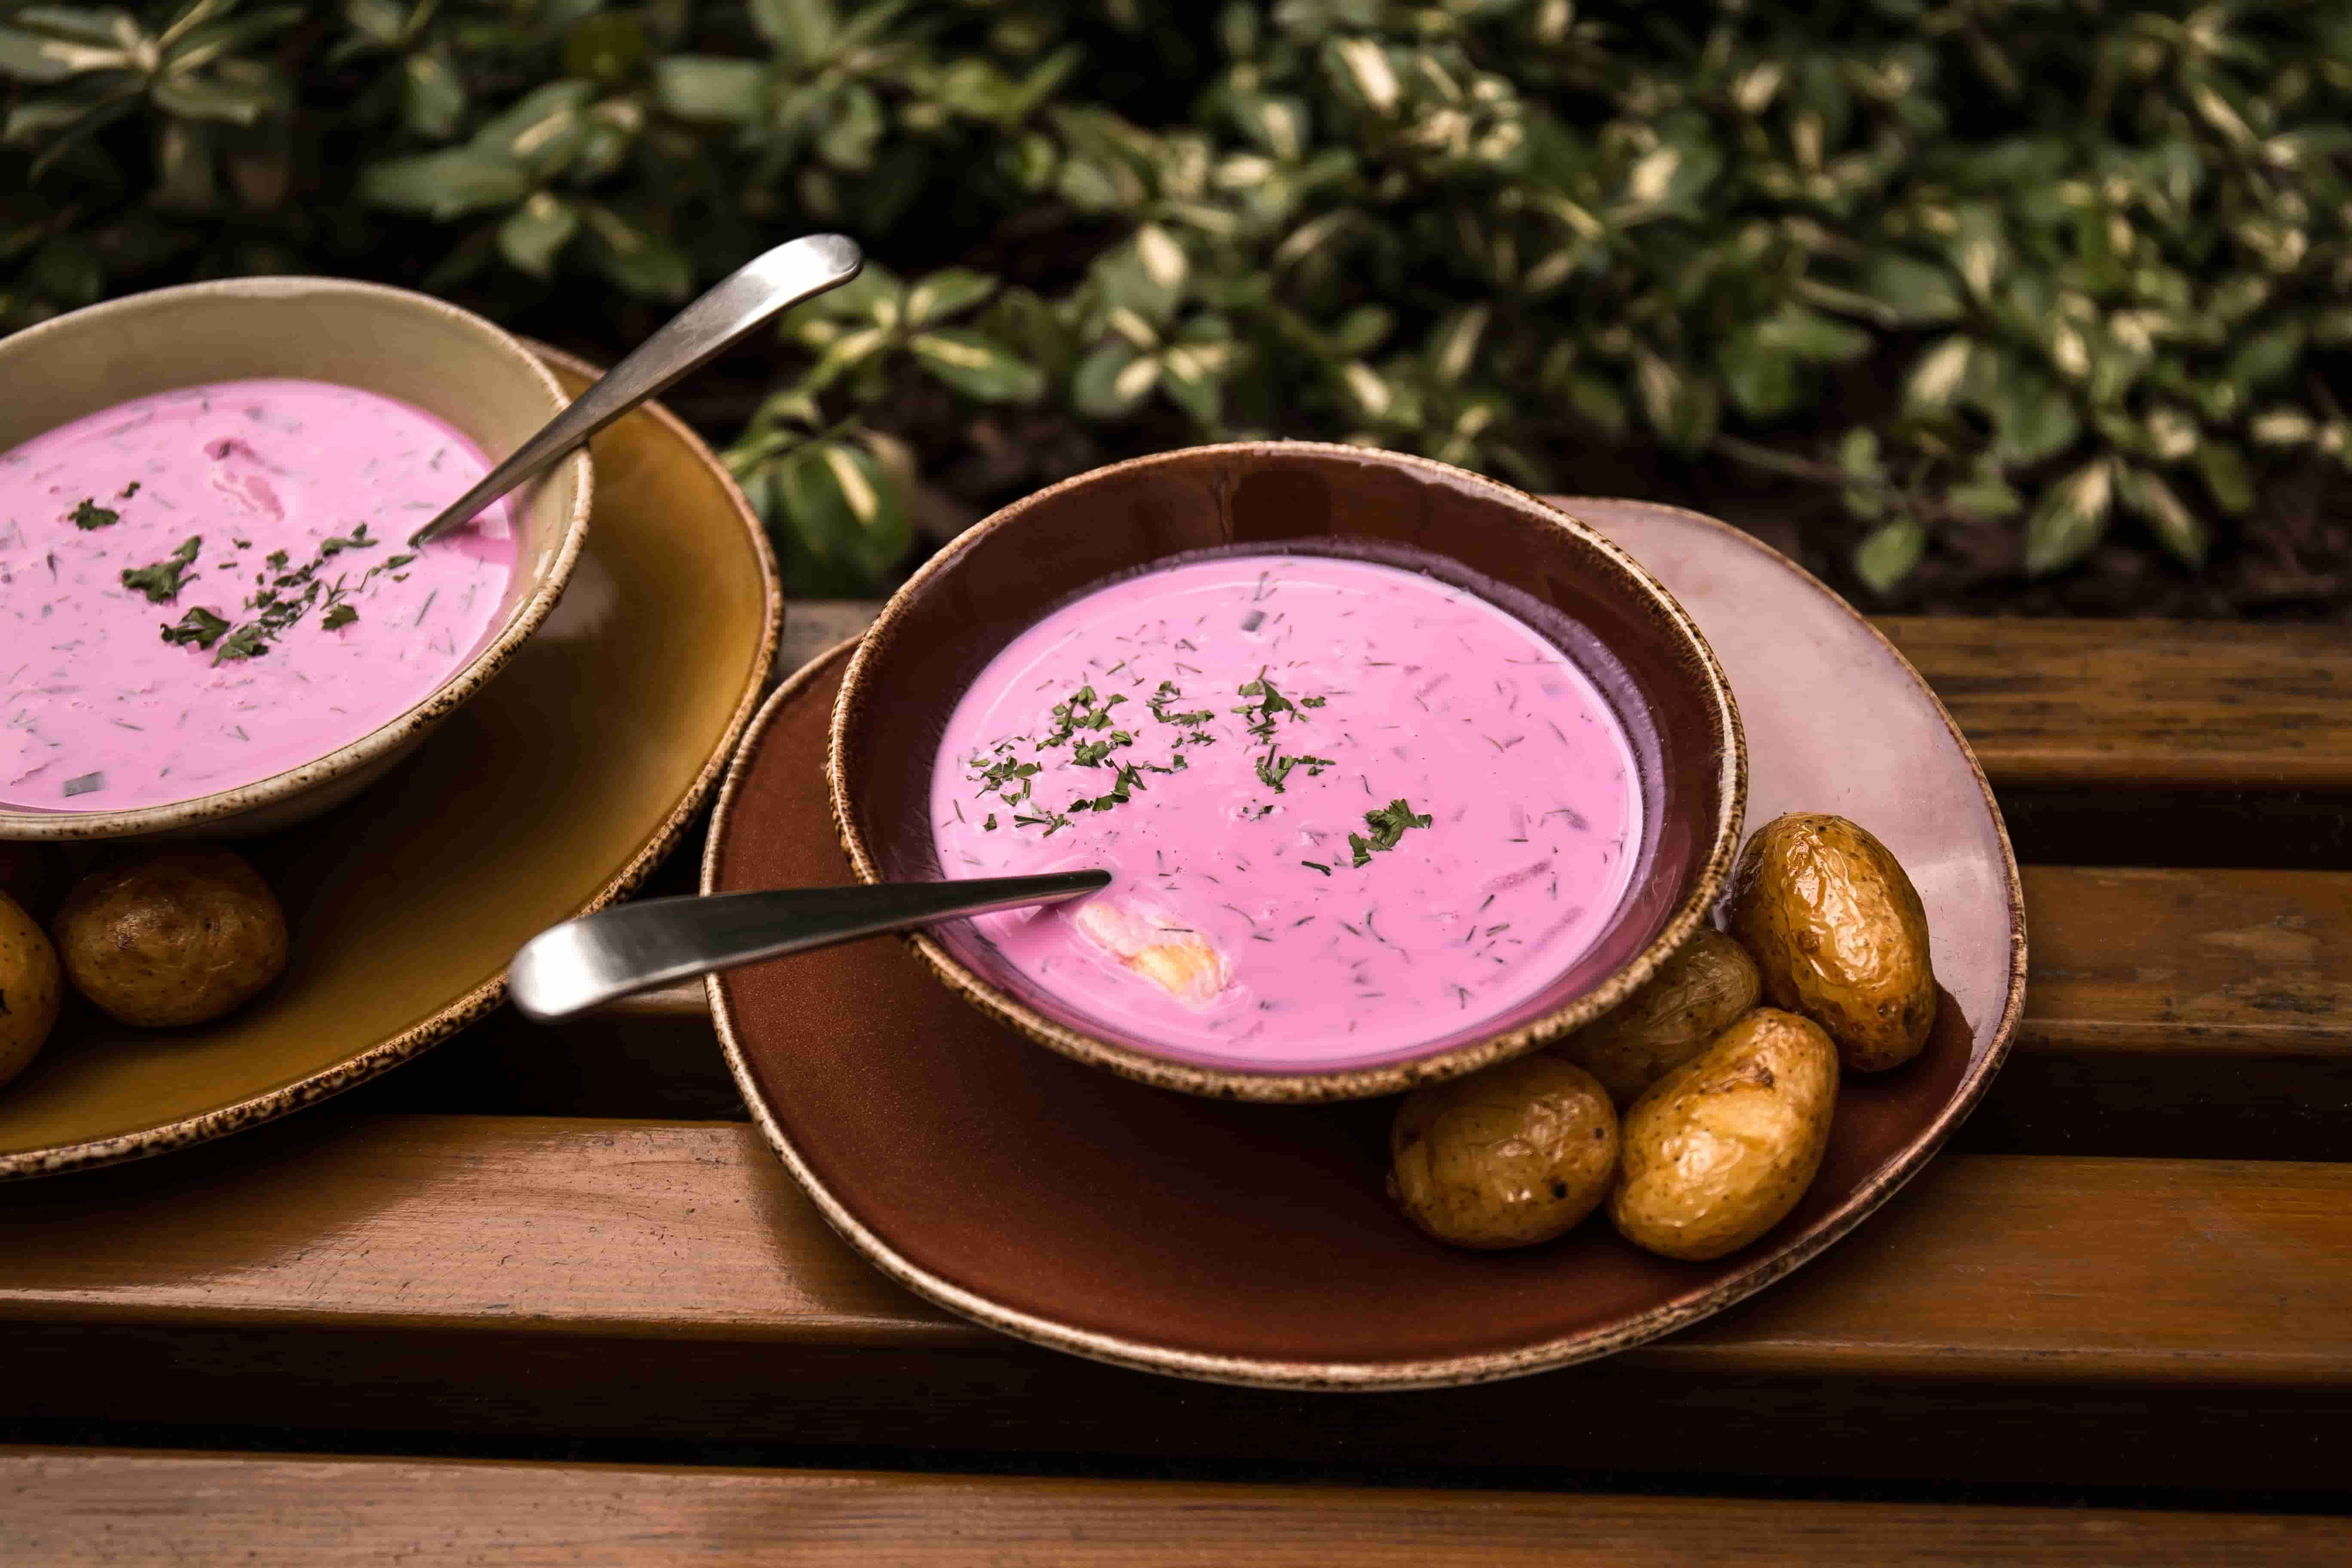 A must try dish in Lithuania - cold beetroot soup aka pink soup